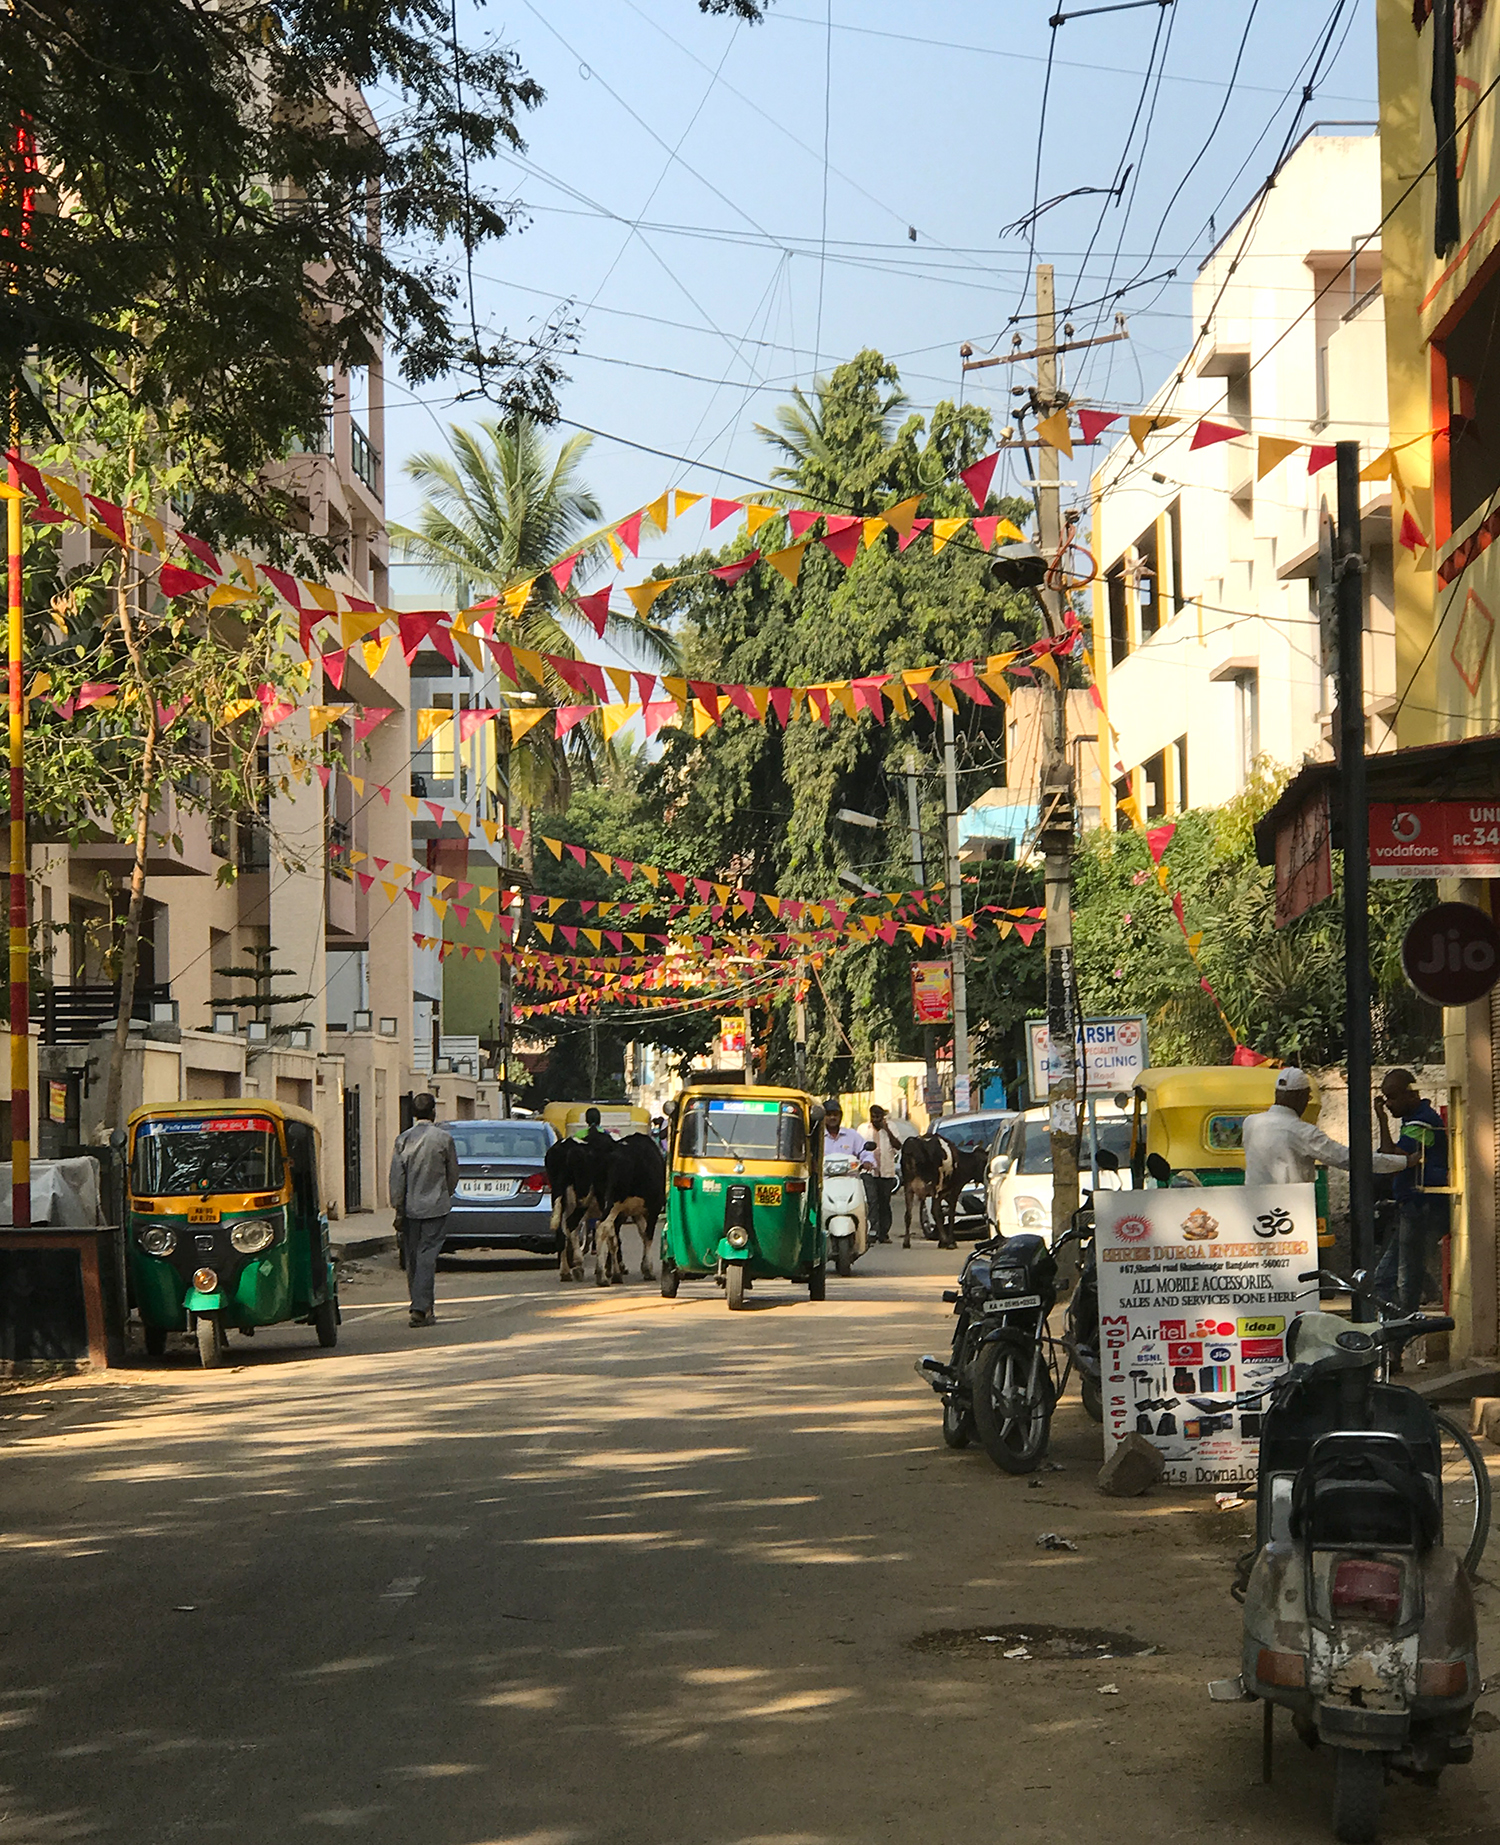 This is the Shanthi Road.